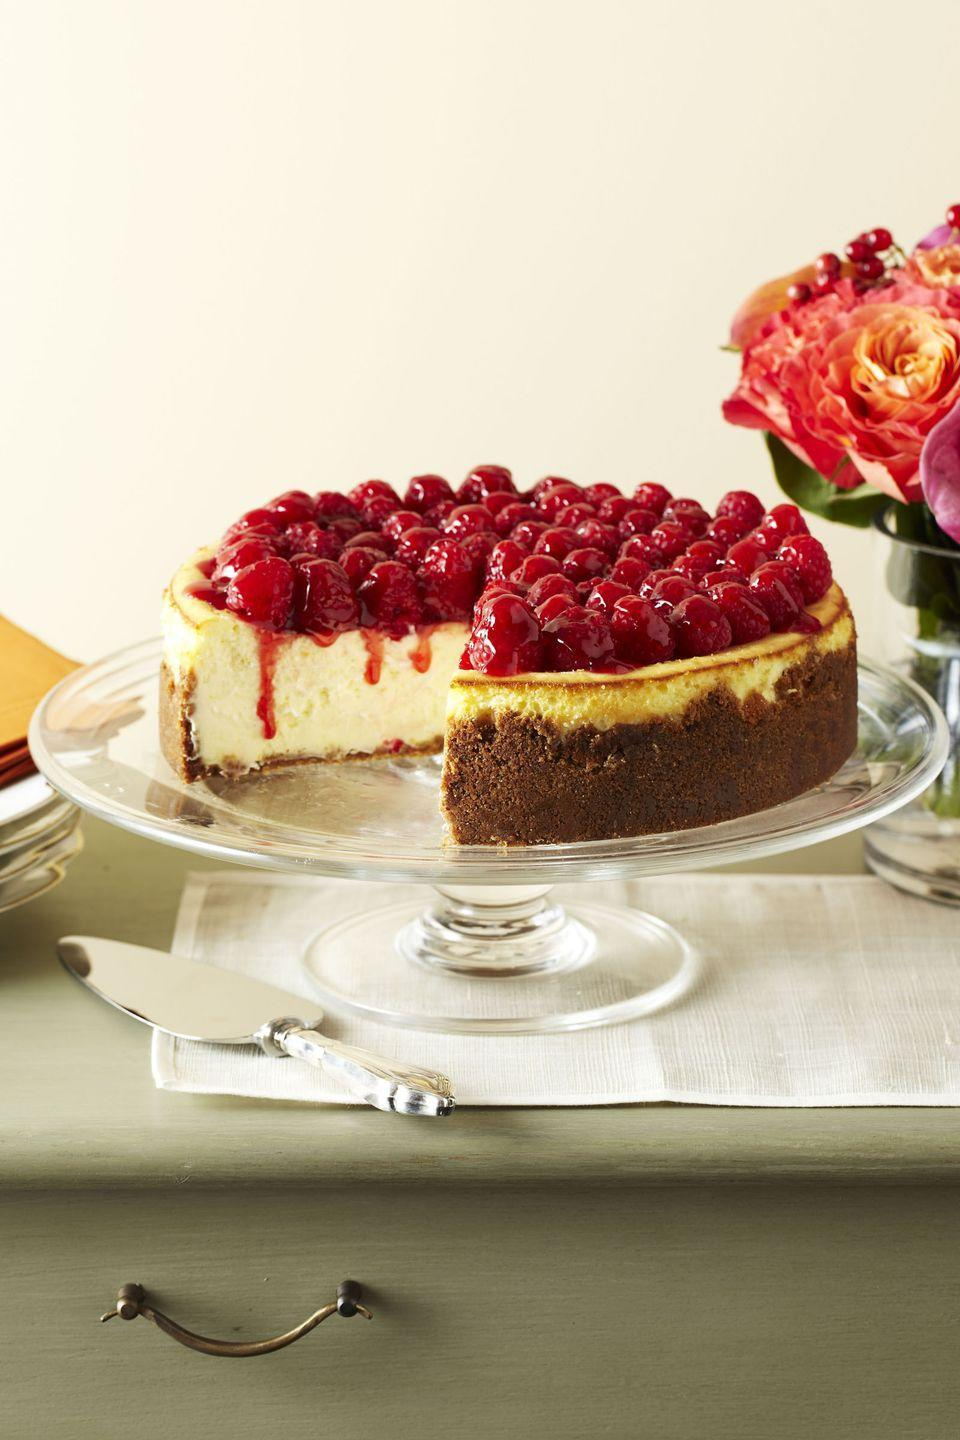 "<p>Add some variety to your dessert table with this <a href=""https://www.goodhousekeeping.com/food-recipes/cooking/g5106/how-to-make-cheesecake/"" rel=""nofollow noopener"" target=""_blank"" data-ylk=""slk:made-from-scratch cheesecake"" class=""link rapid-noclick-resp"">made-from-scratch cheesecake</a>, complete with a gorgeous berry topping. </p><p><em><a href=""https://www.goodhousekeeping.com/food-recipes/a11443/raspberry-cheesecake-recipe-ghk1111/"" rel=""nofollow noopener"" target=""_blank"" data-ylk=""slk:Get the recipe for Raspberry Cheesecake »"" class=""link rapid-noclick-resp"">Get the recipe for Raspberry Cheesecake »</a></em></p><p><strong>RELATED: </strong><a href=""https://www.goodhousekeeping.com/holidays/thanksgiving-ideas/g1532/thanksgiving-desserts/"" rel=""nofollow noopener"" target=""_blank"" data-ylk=""slk:63 Absolutely Incredible Thanksgiving Desserts You Need to Make"" class=""link rapid-noclick-resp"">63 Absolutely Incredible Thanksgiving Desserts You Need to Make</a></p>"